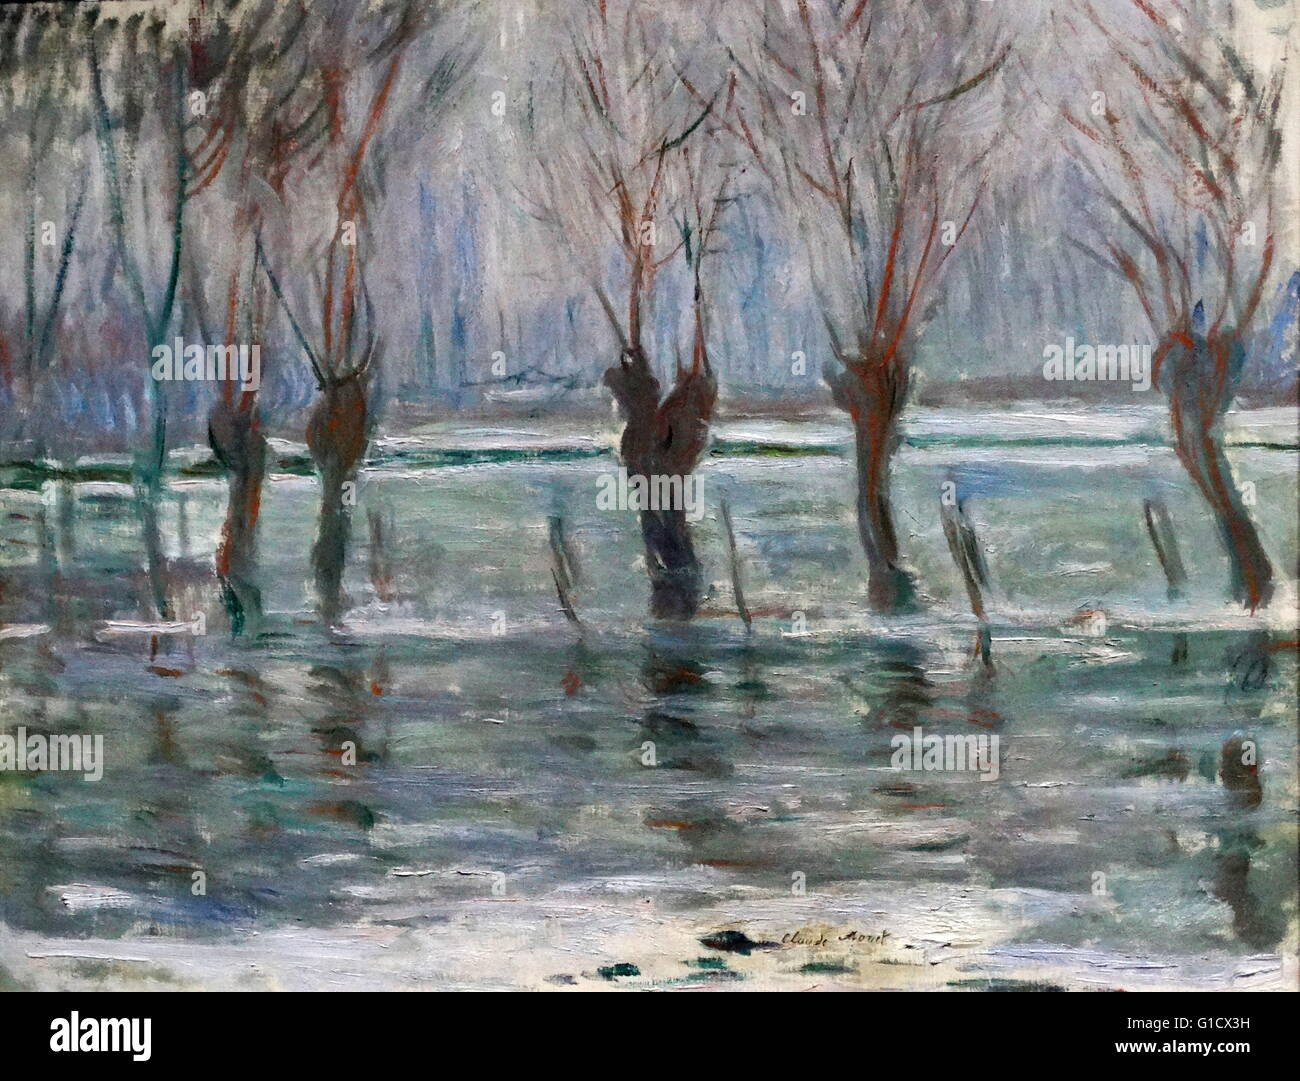 Painting titled 'Flood Waters' by Claude Monet (1840-1926) French Impressionist painter. Dated 19th Century - Stock Image